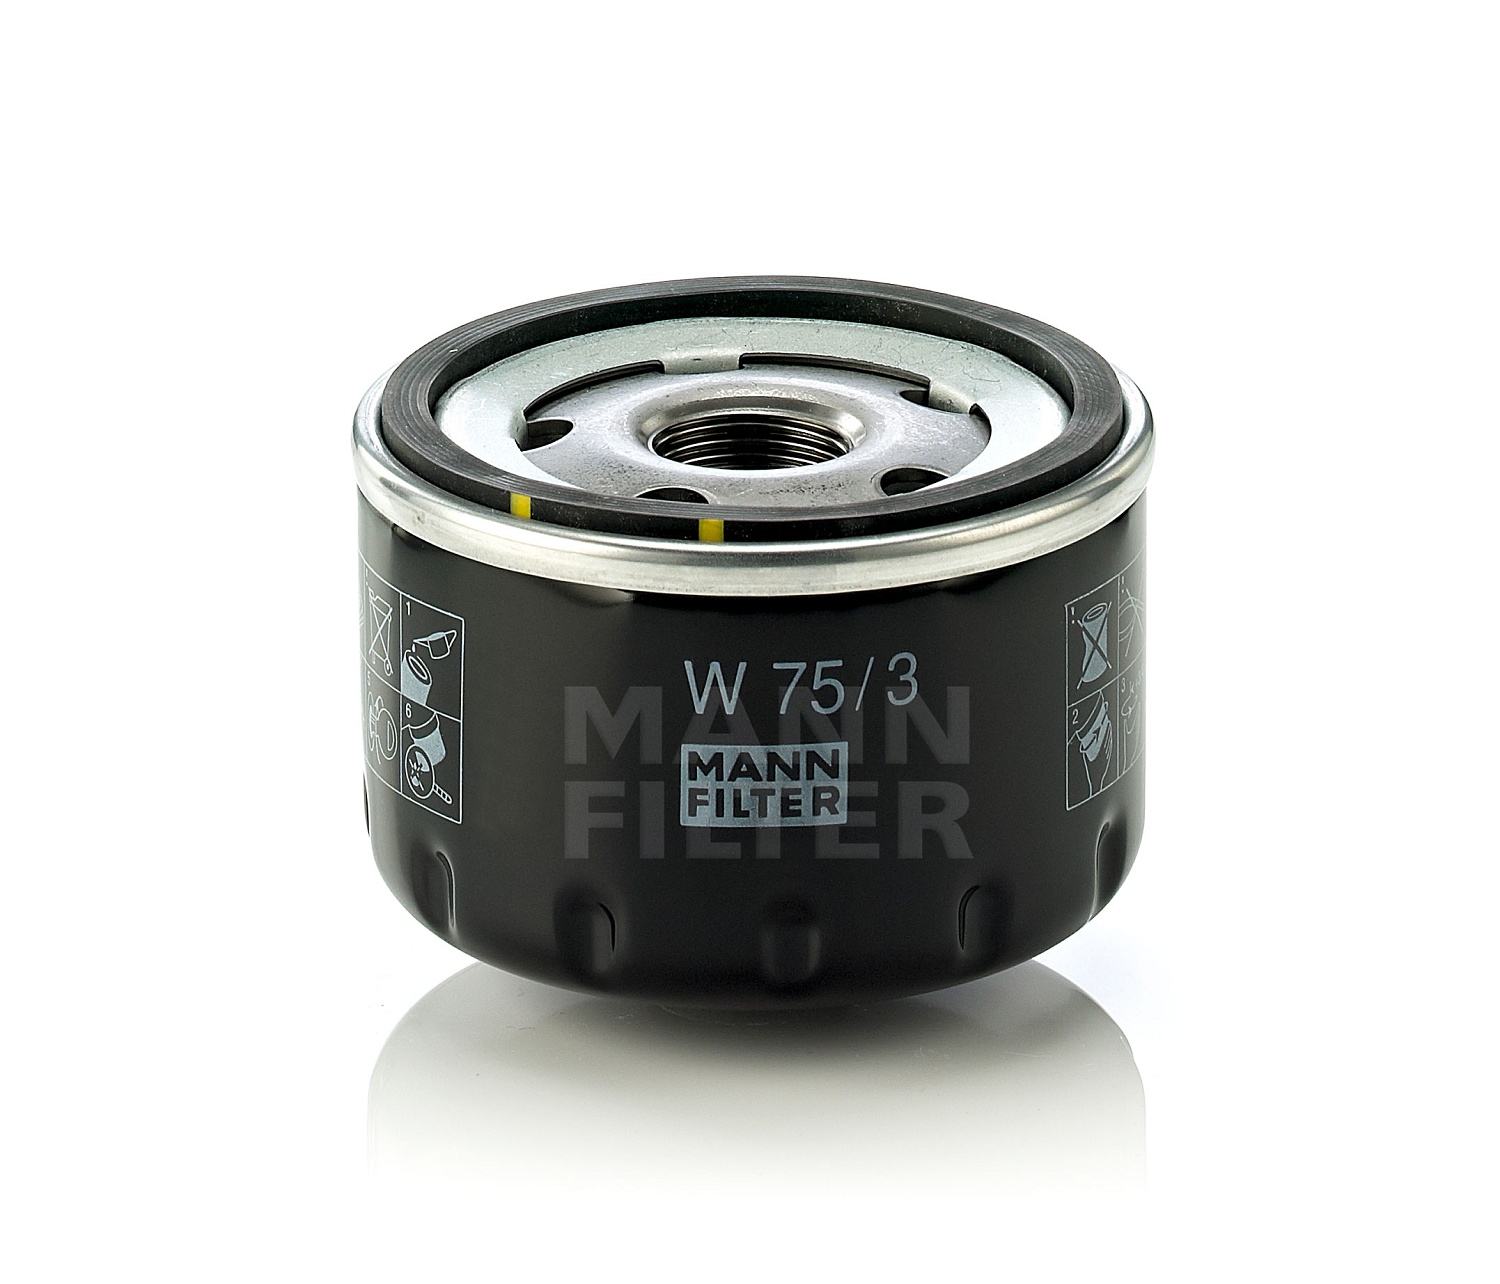 MANN Oil Filter W75/3 fits Renault Clio 1.4 16V (BB),1.6 ...